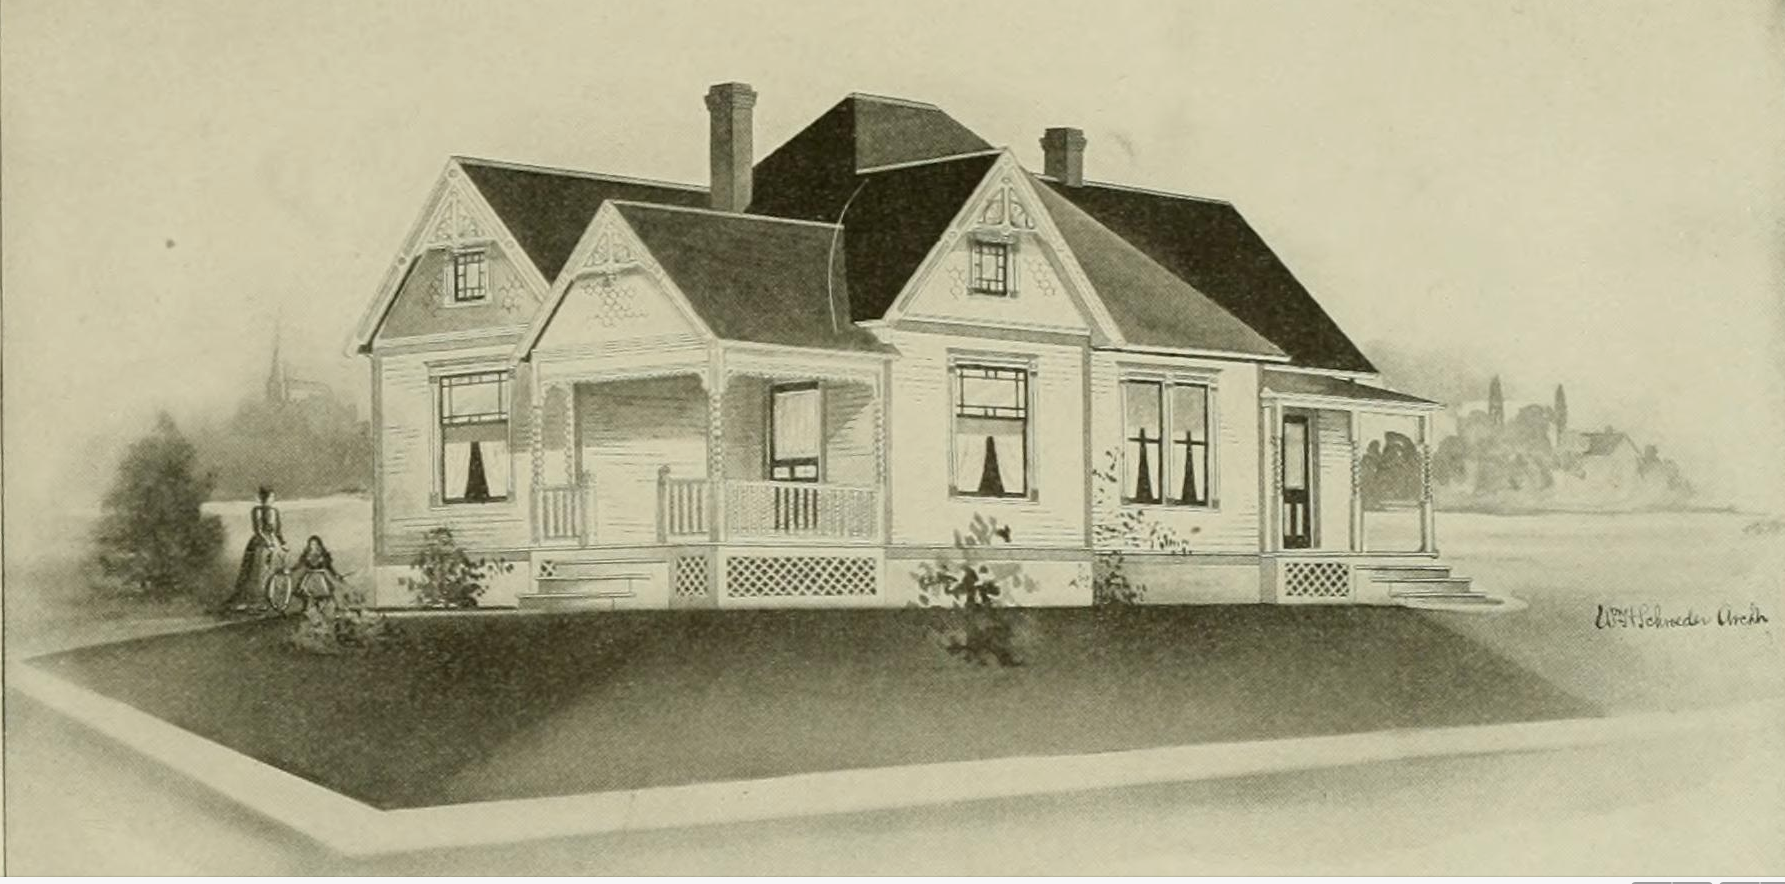 A Rendering of a 1903 Radford Folk Victorian Farmhouse